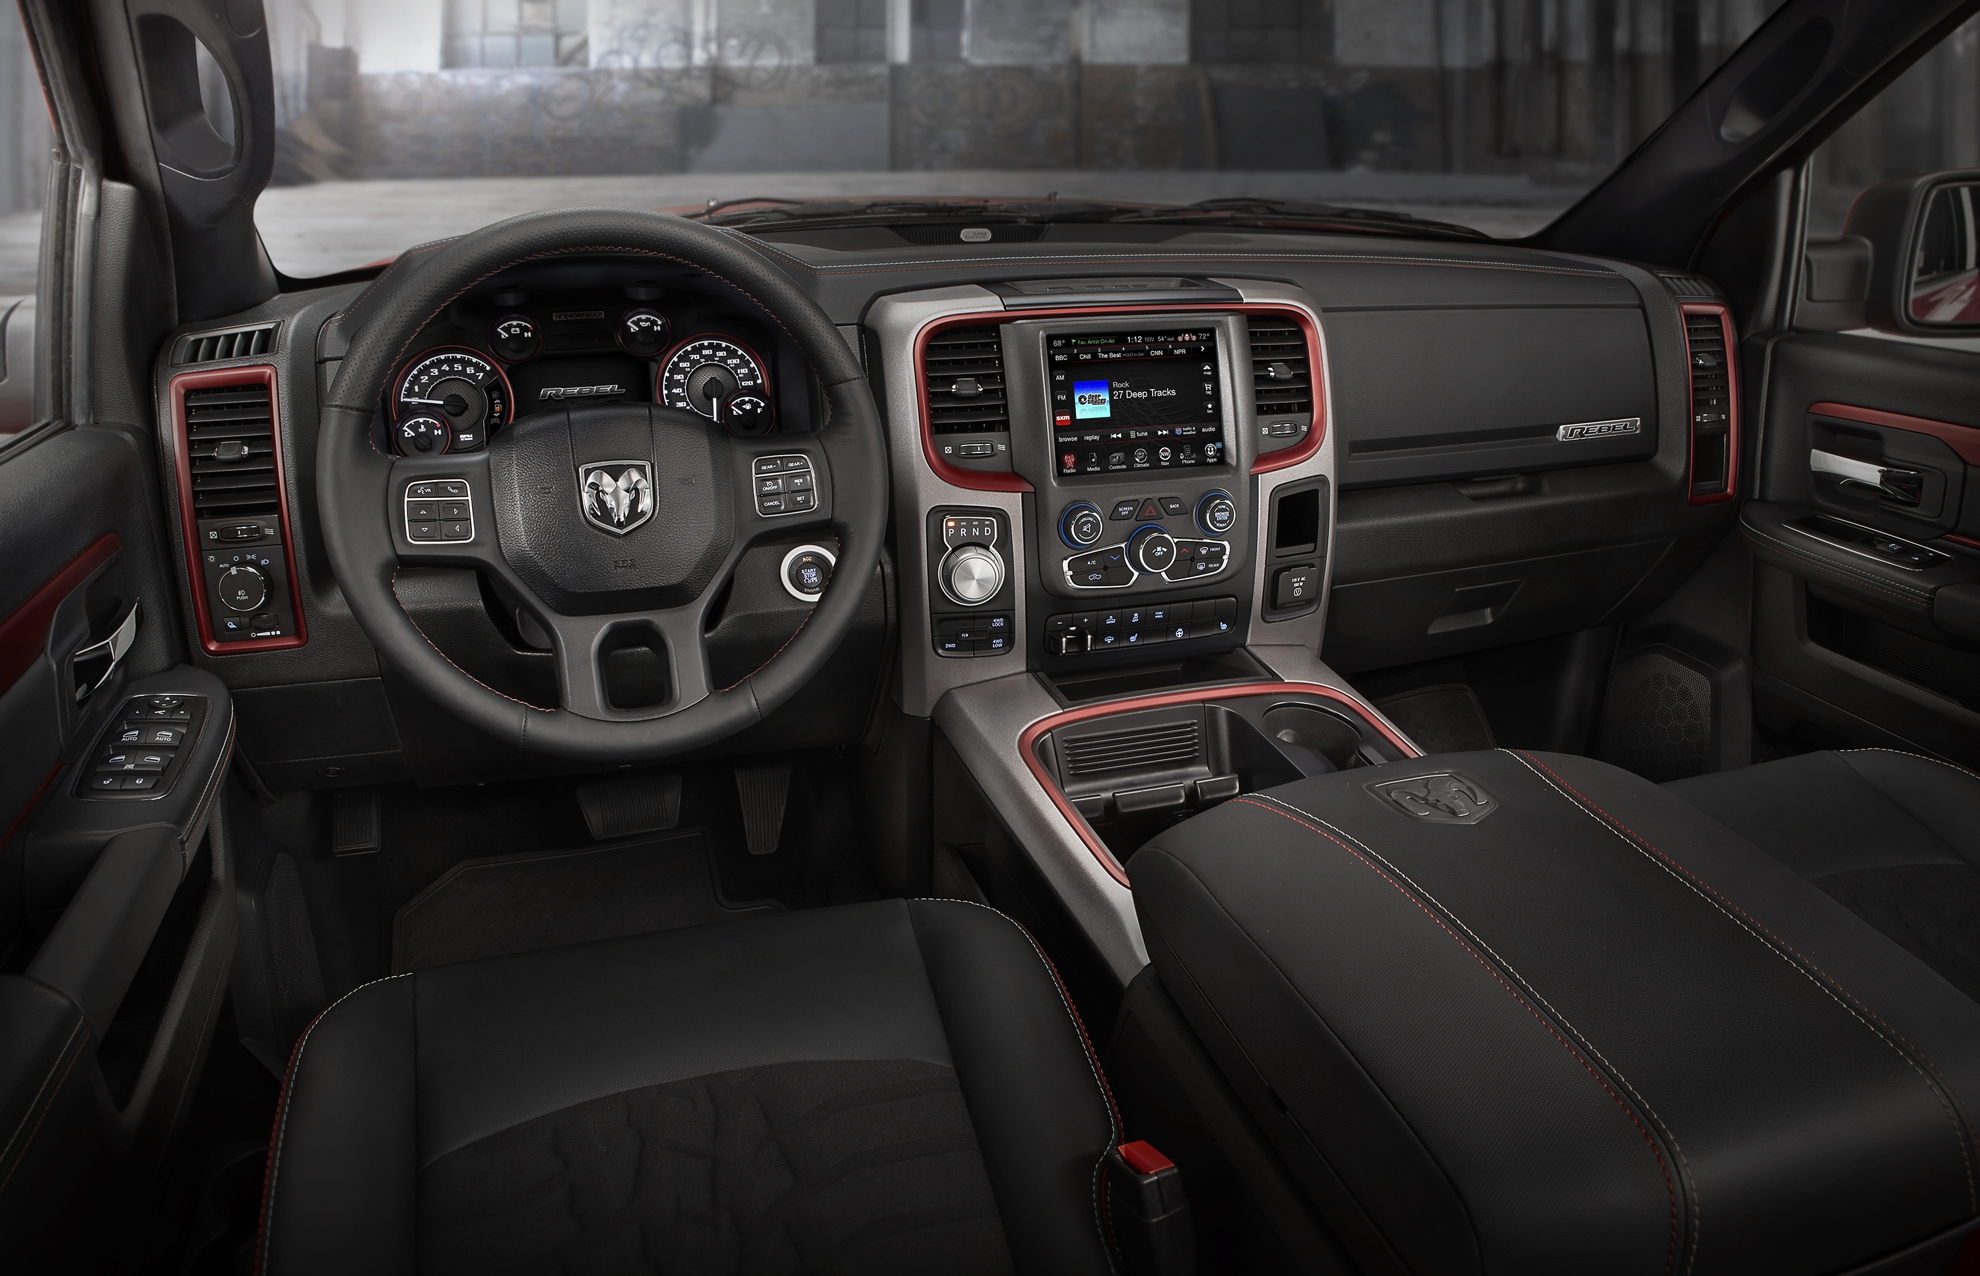 2015 dodge ram 1500 interior 2015 dodge ram 1500 interior car interior design. Black Bedroom Furniture Sets. Home Design Ideas